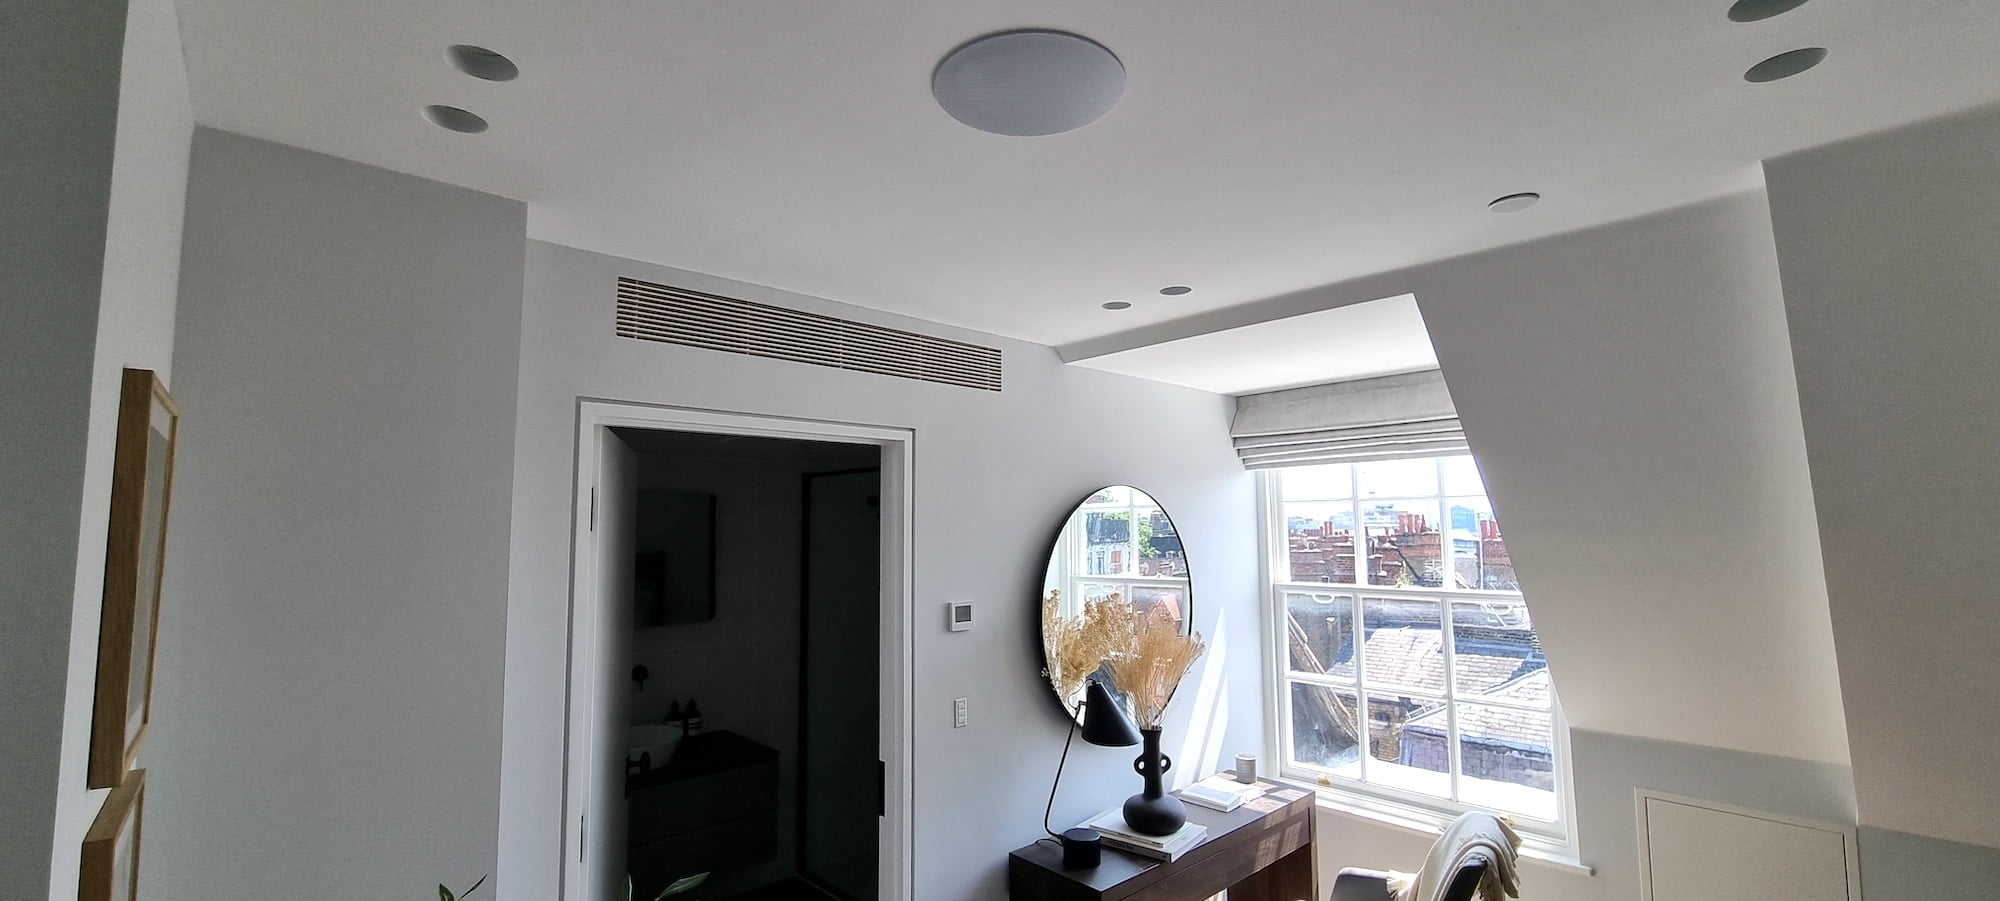 AAC Blogs - How using an established air conditioning company makes all the difference